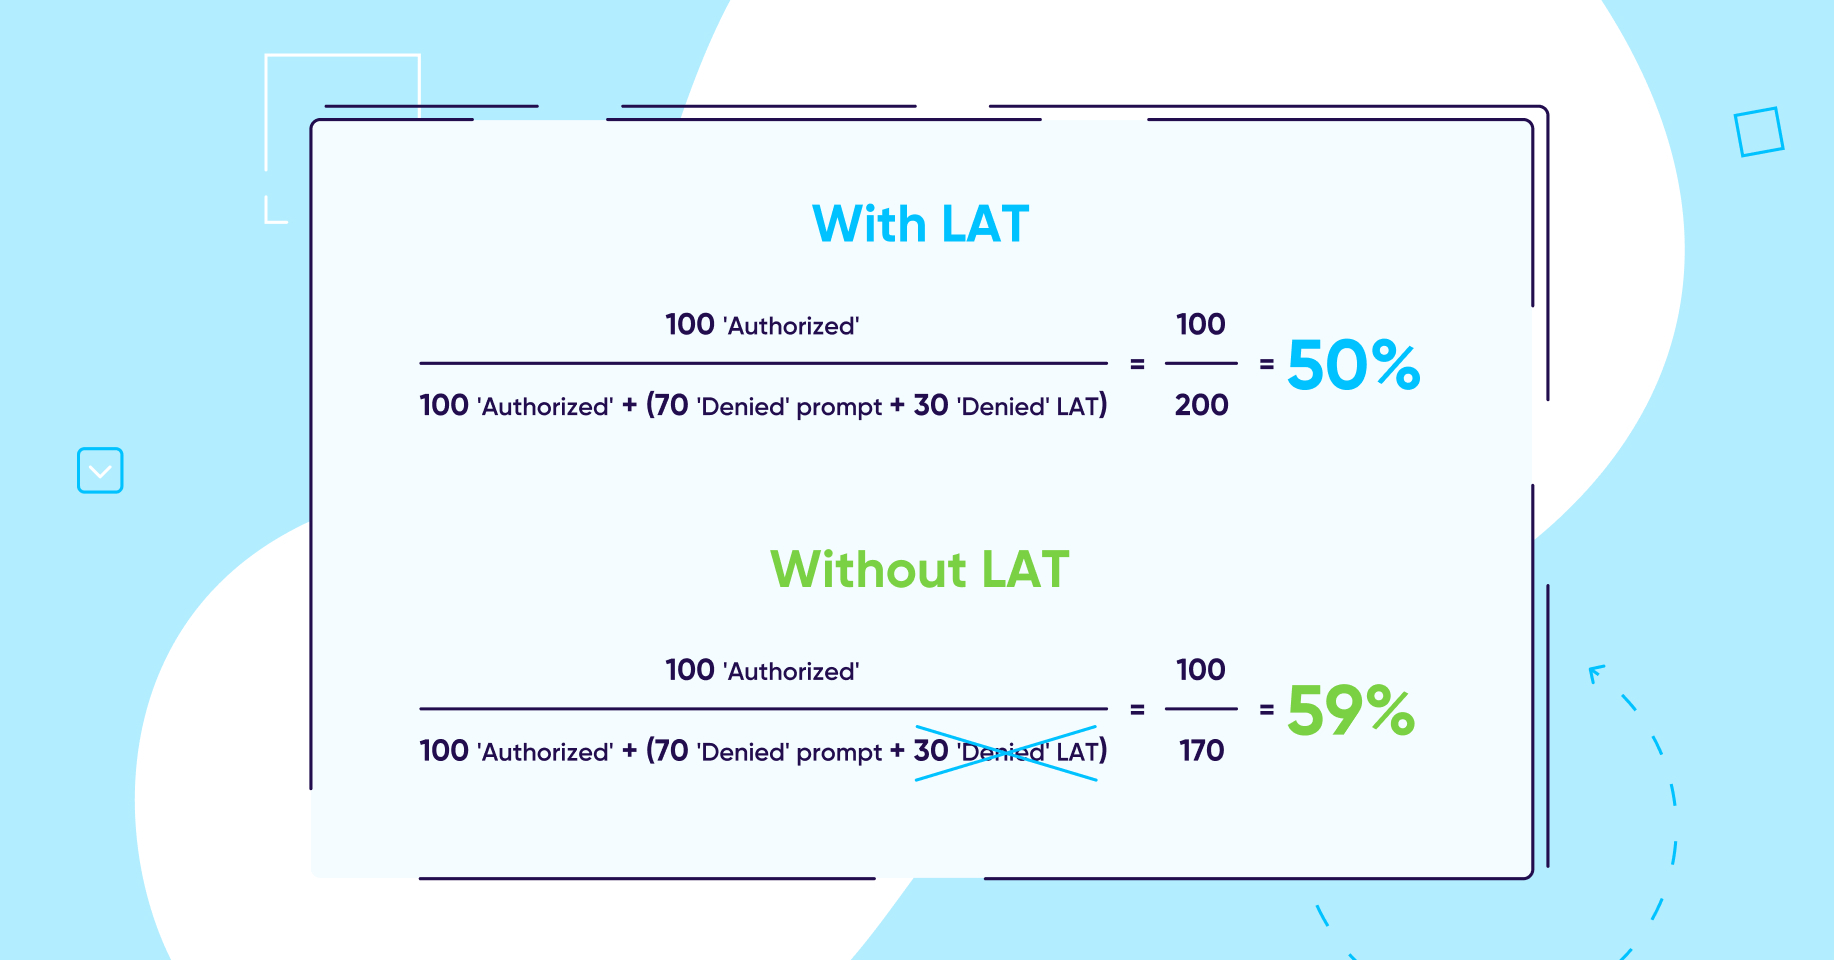 Opt-in rate with LAT and without LAT